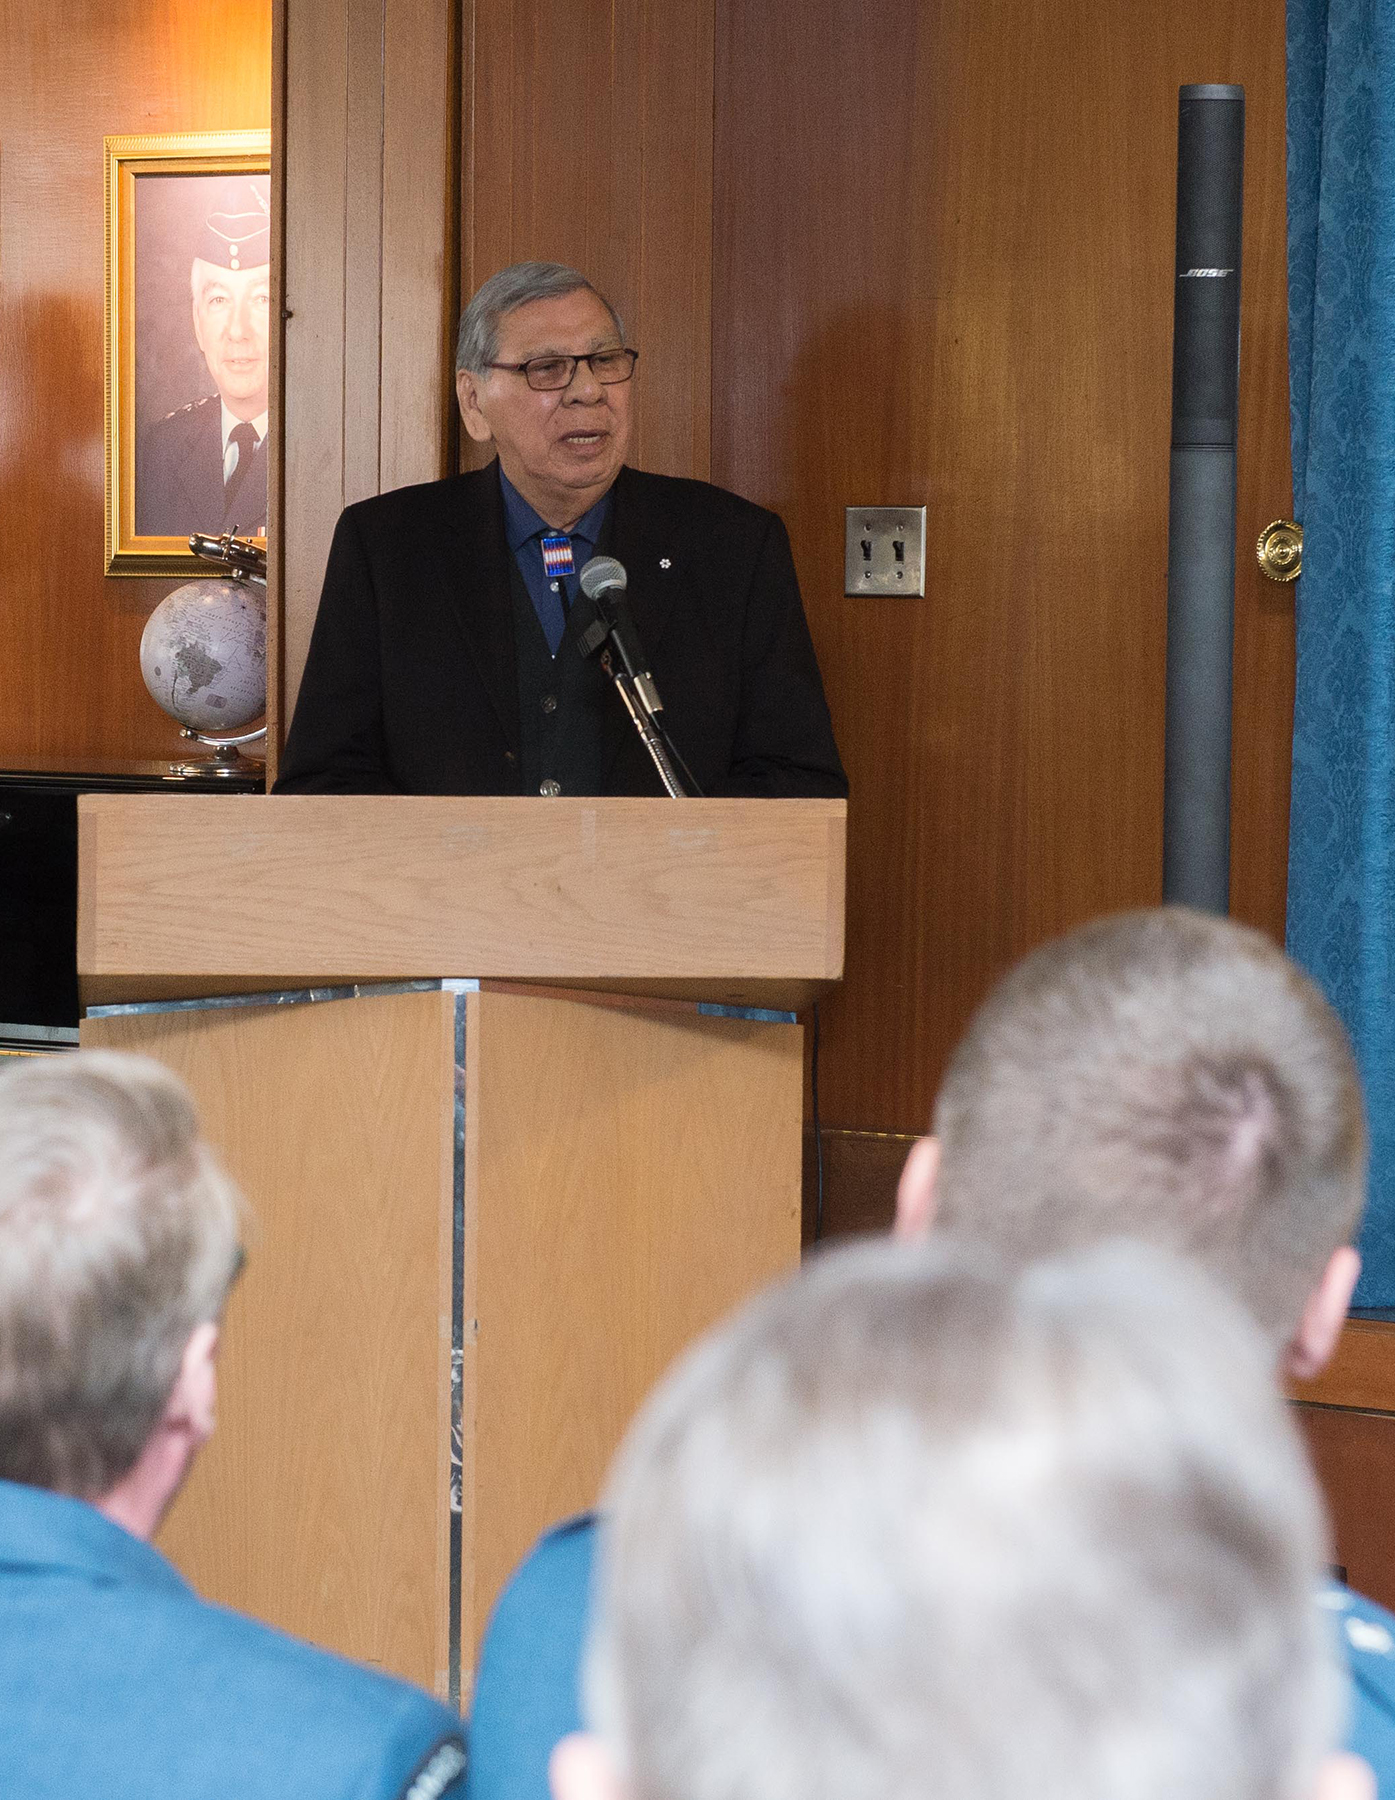 On March 21, 2018, Elder Mr. Harry Bone, asks a blessing during the change of appointment Ceremony at 17 Wing Winnipeg, Manitoba. PHOTO: Corporal Darryl Hepner, WG2018-0120-008